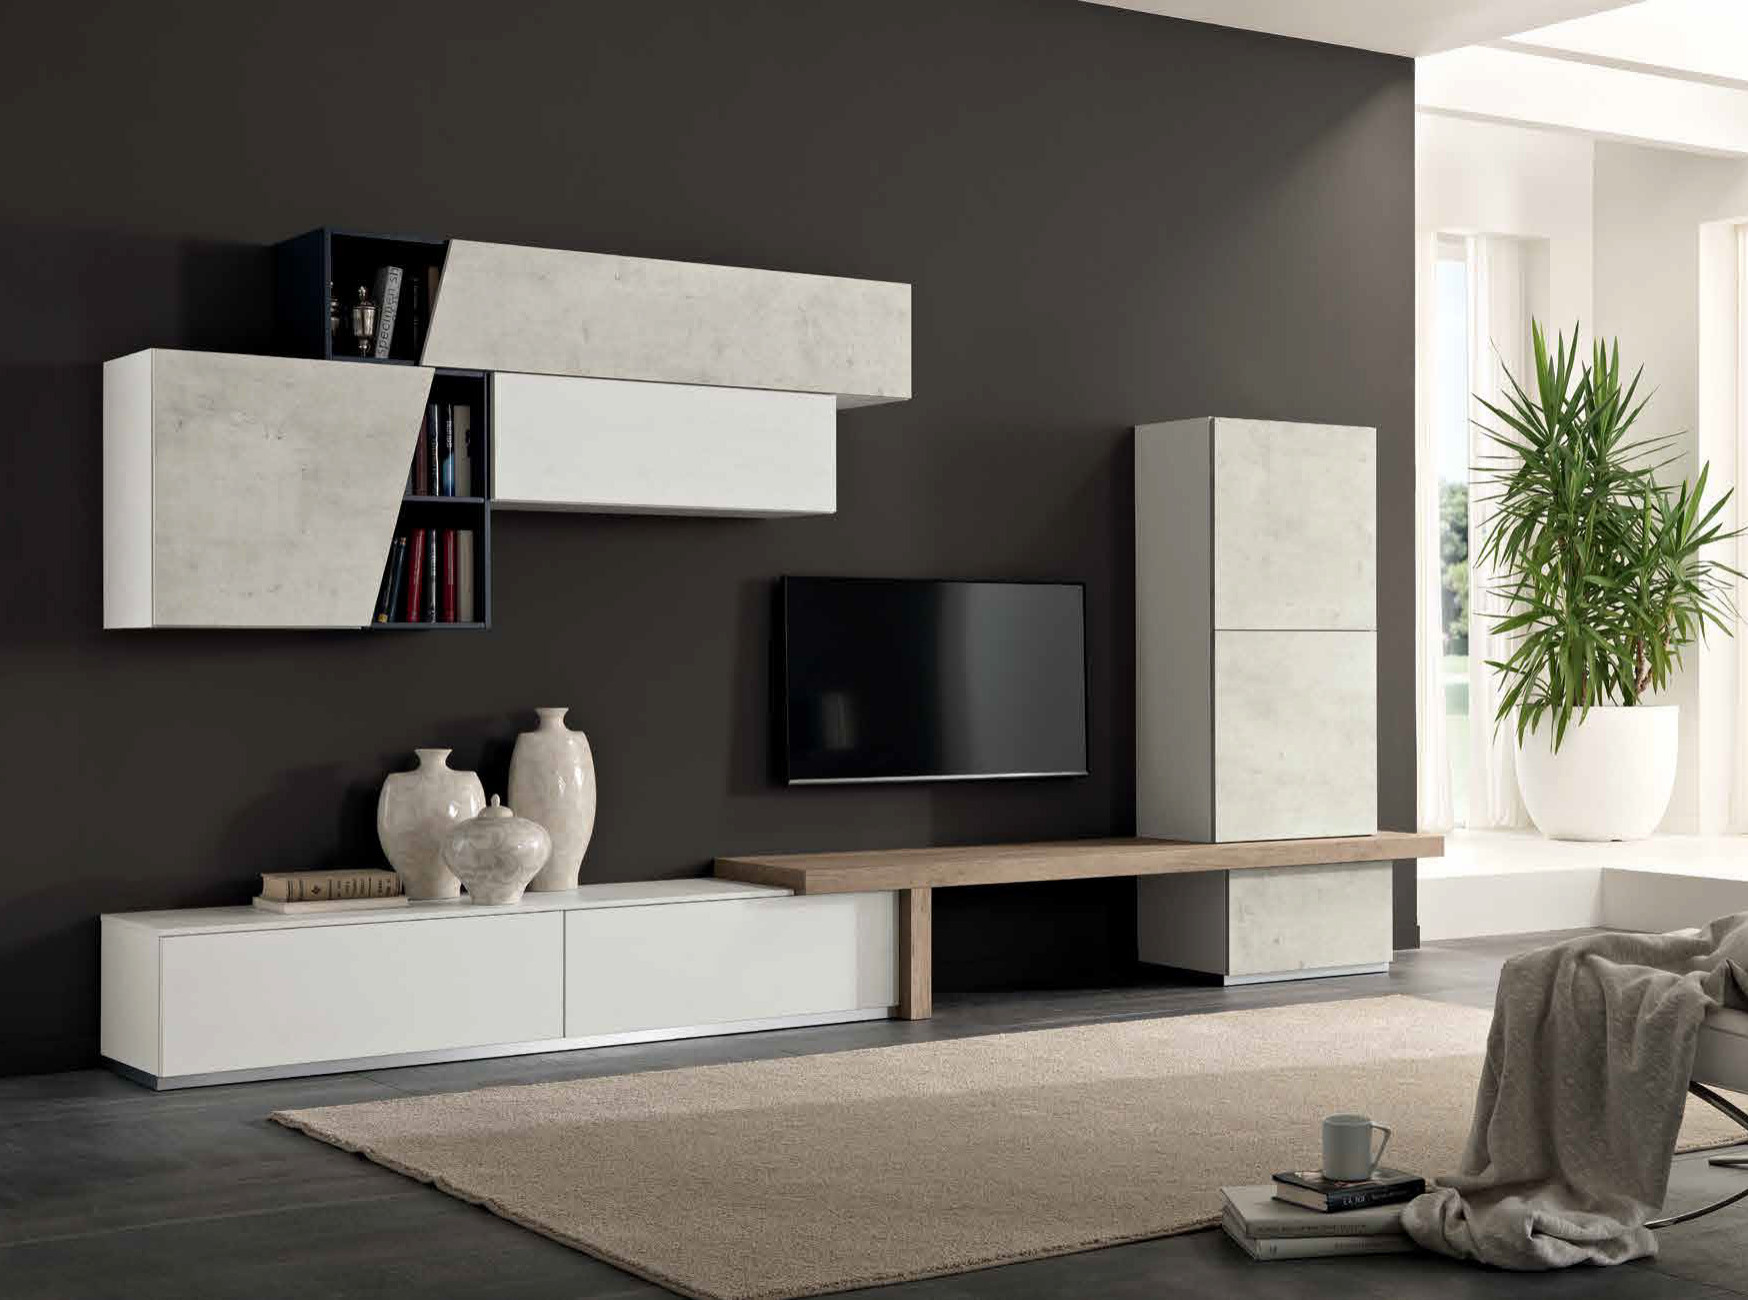 Modular Wall Unit Furniture Living Room Ideas Photos Houzz